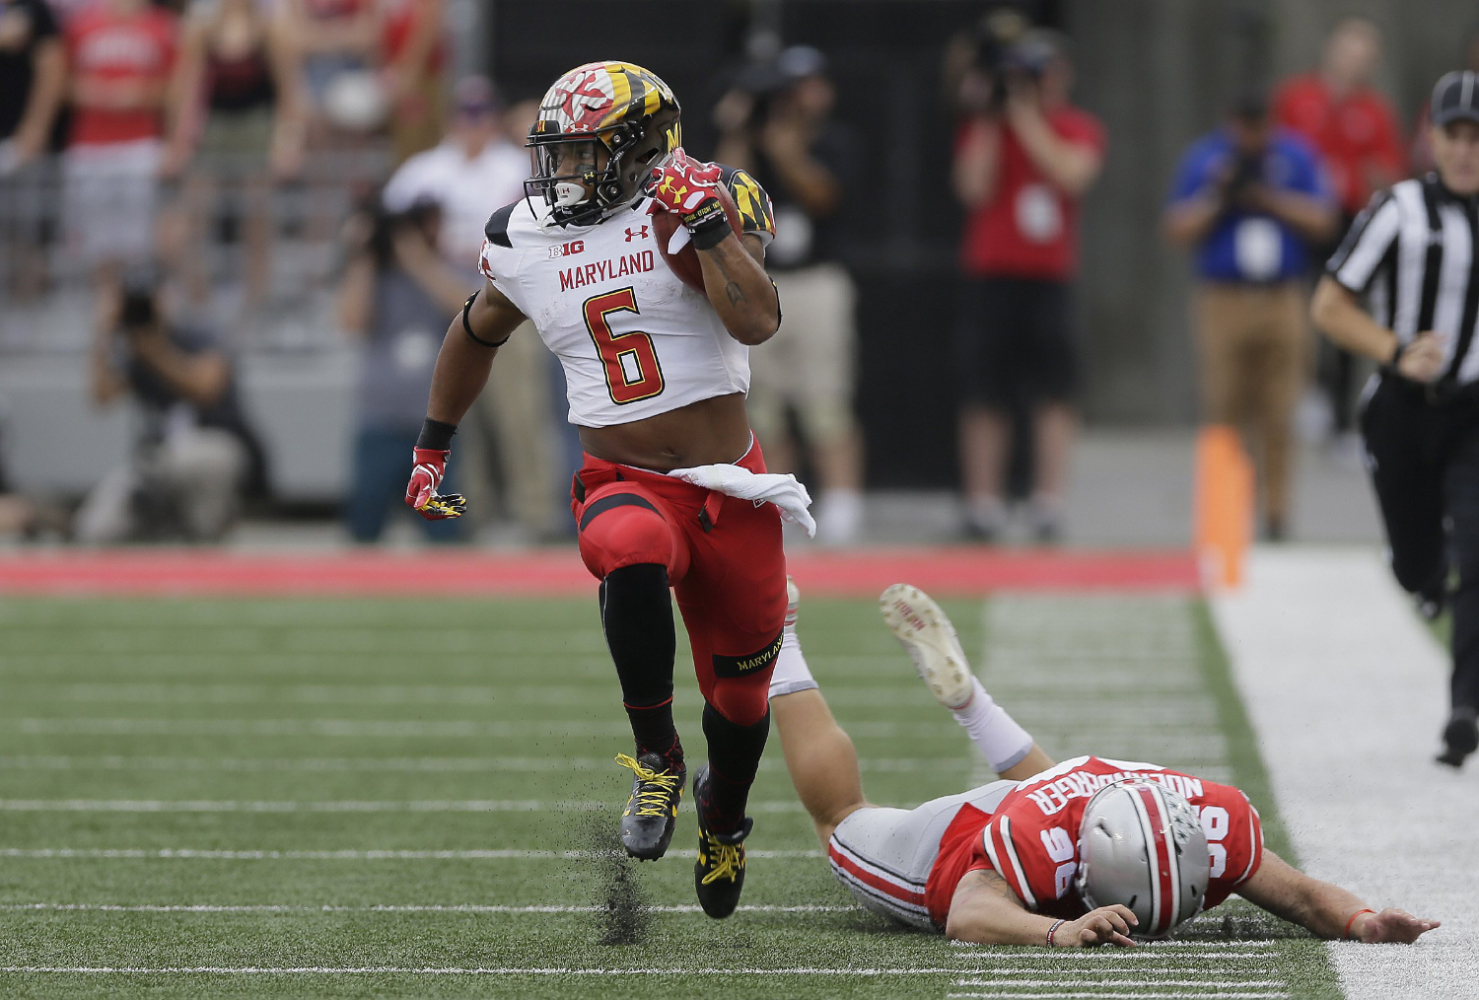 Maryland running back Ty Johnson (6) returns a kickoff 65 yards for a touchdown past Ohio State kicker Sean Nuernberger (96) at Ohio Stadium in Columbus, Ohio, on October 7, 2017.